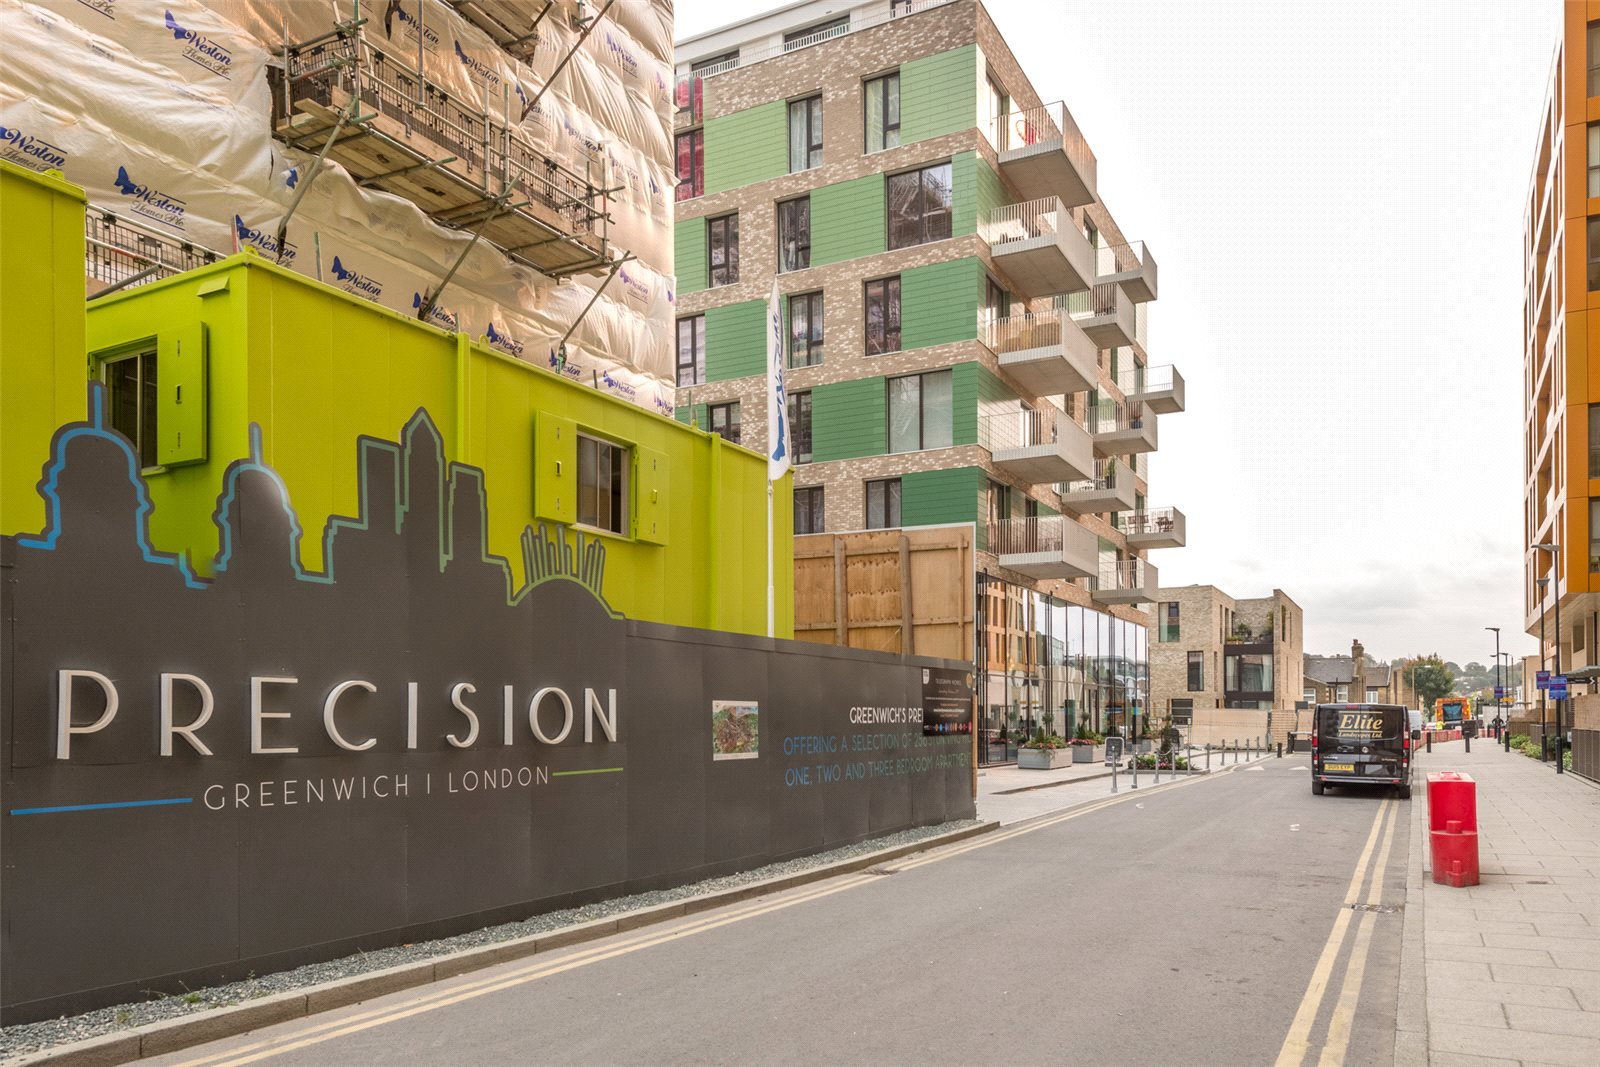 2 Bedrooms Apartment Flat for sale in The Henley, Precision, Greenwich, London, SE10